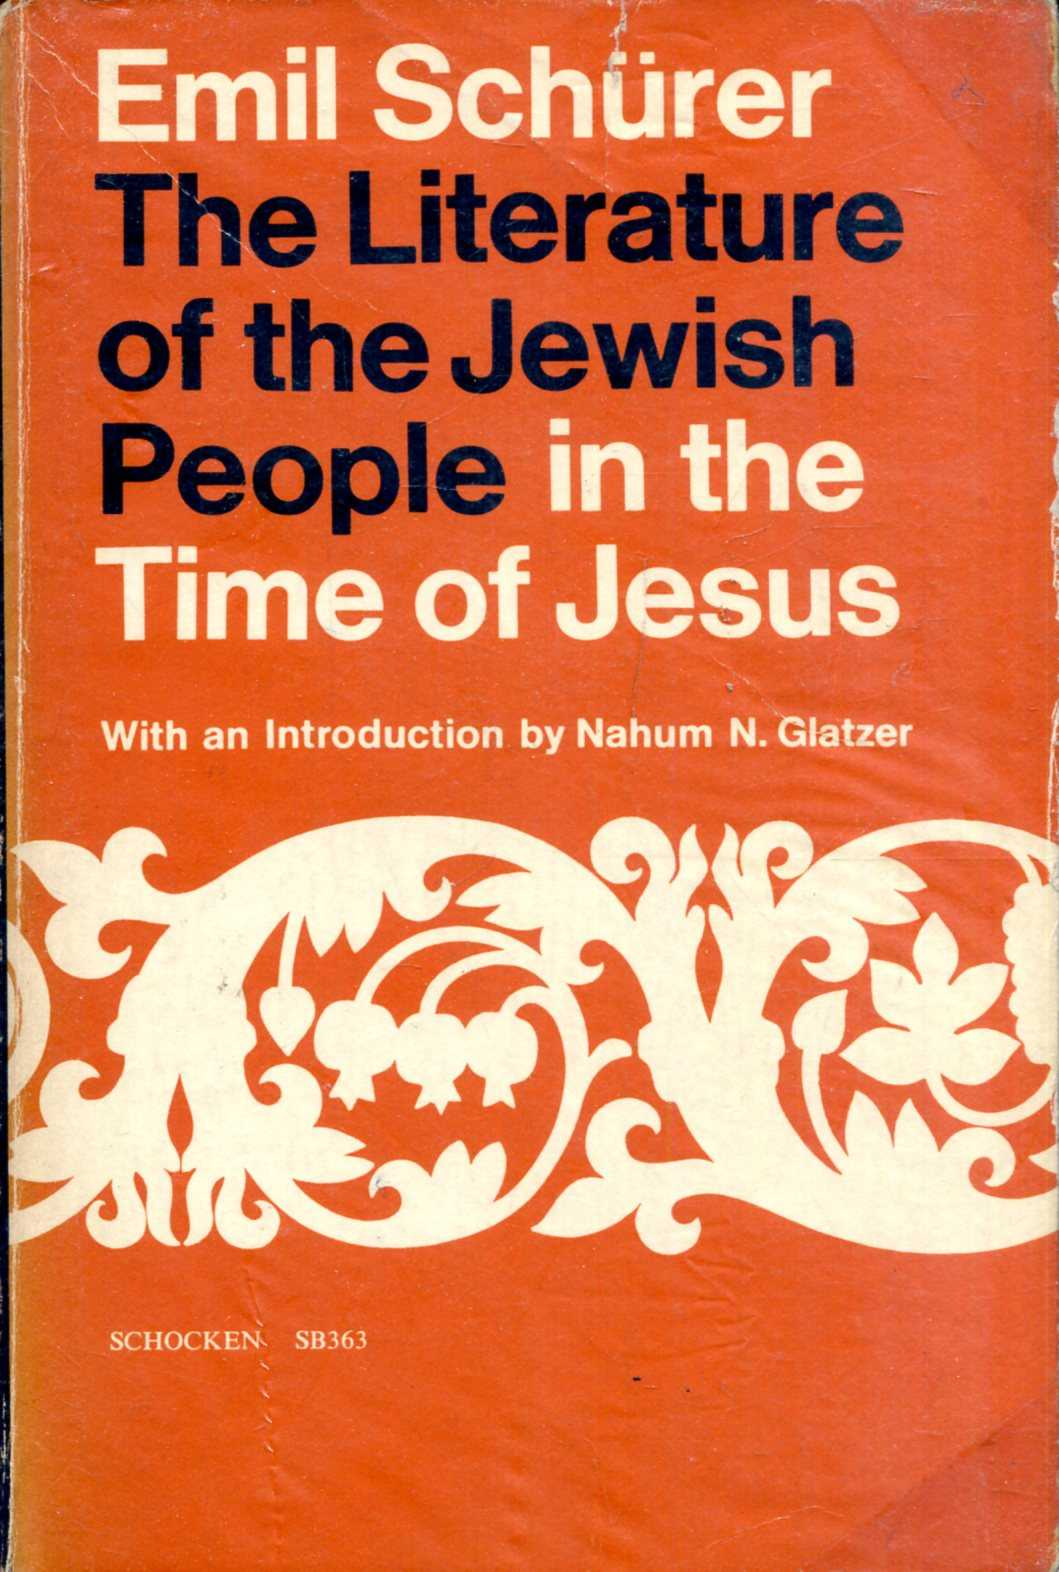 Image for The Literature of the Jewish people in the Time of Jesus